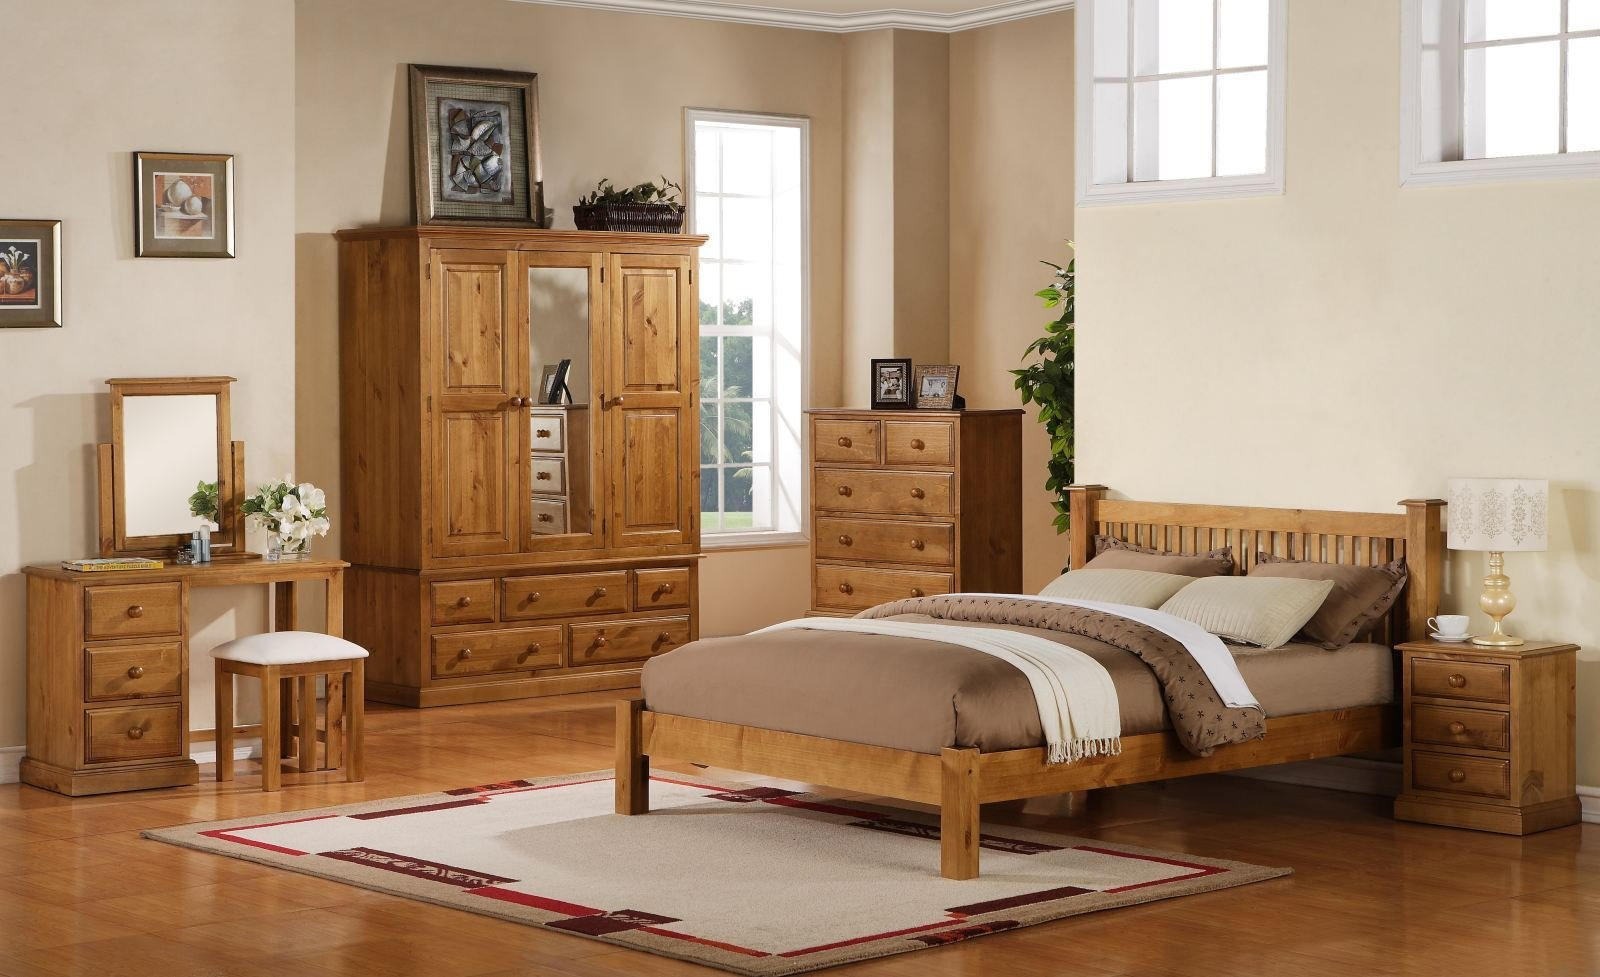 Best Primrose Solid Chunky Pine Bedroom Furniture Small With Pictures